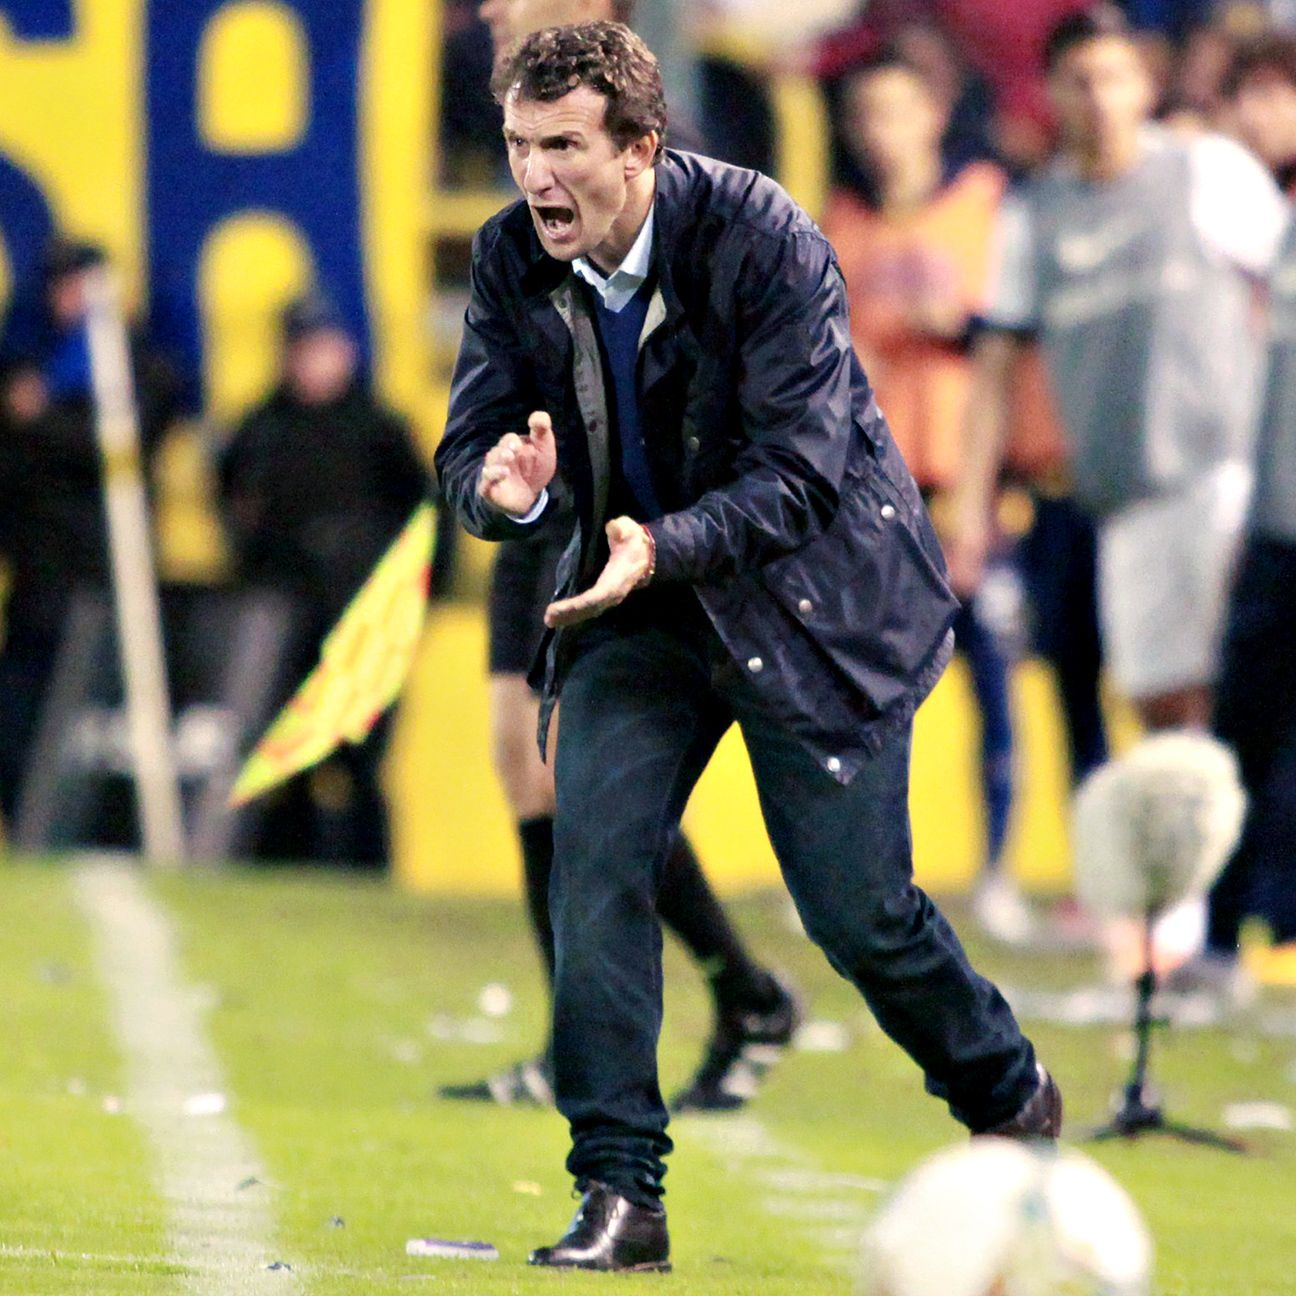 Former Boca player Rodolfo Arruabarrena has turned the club's fortunes around since taking over for Carlos Bianchi earlier this season.